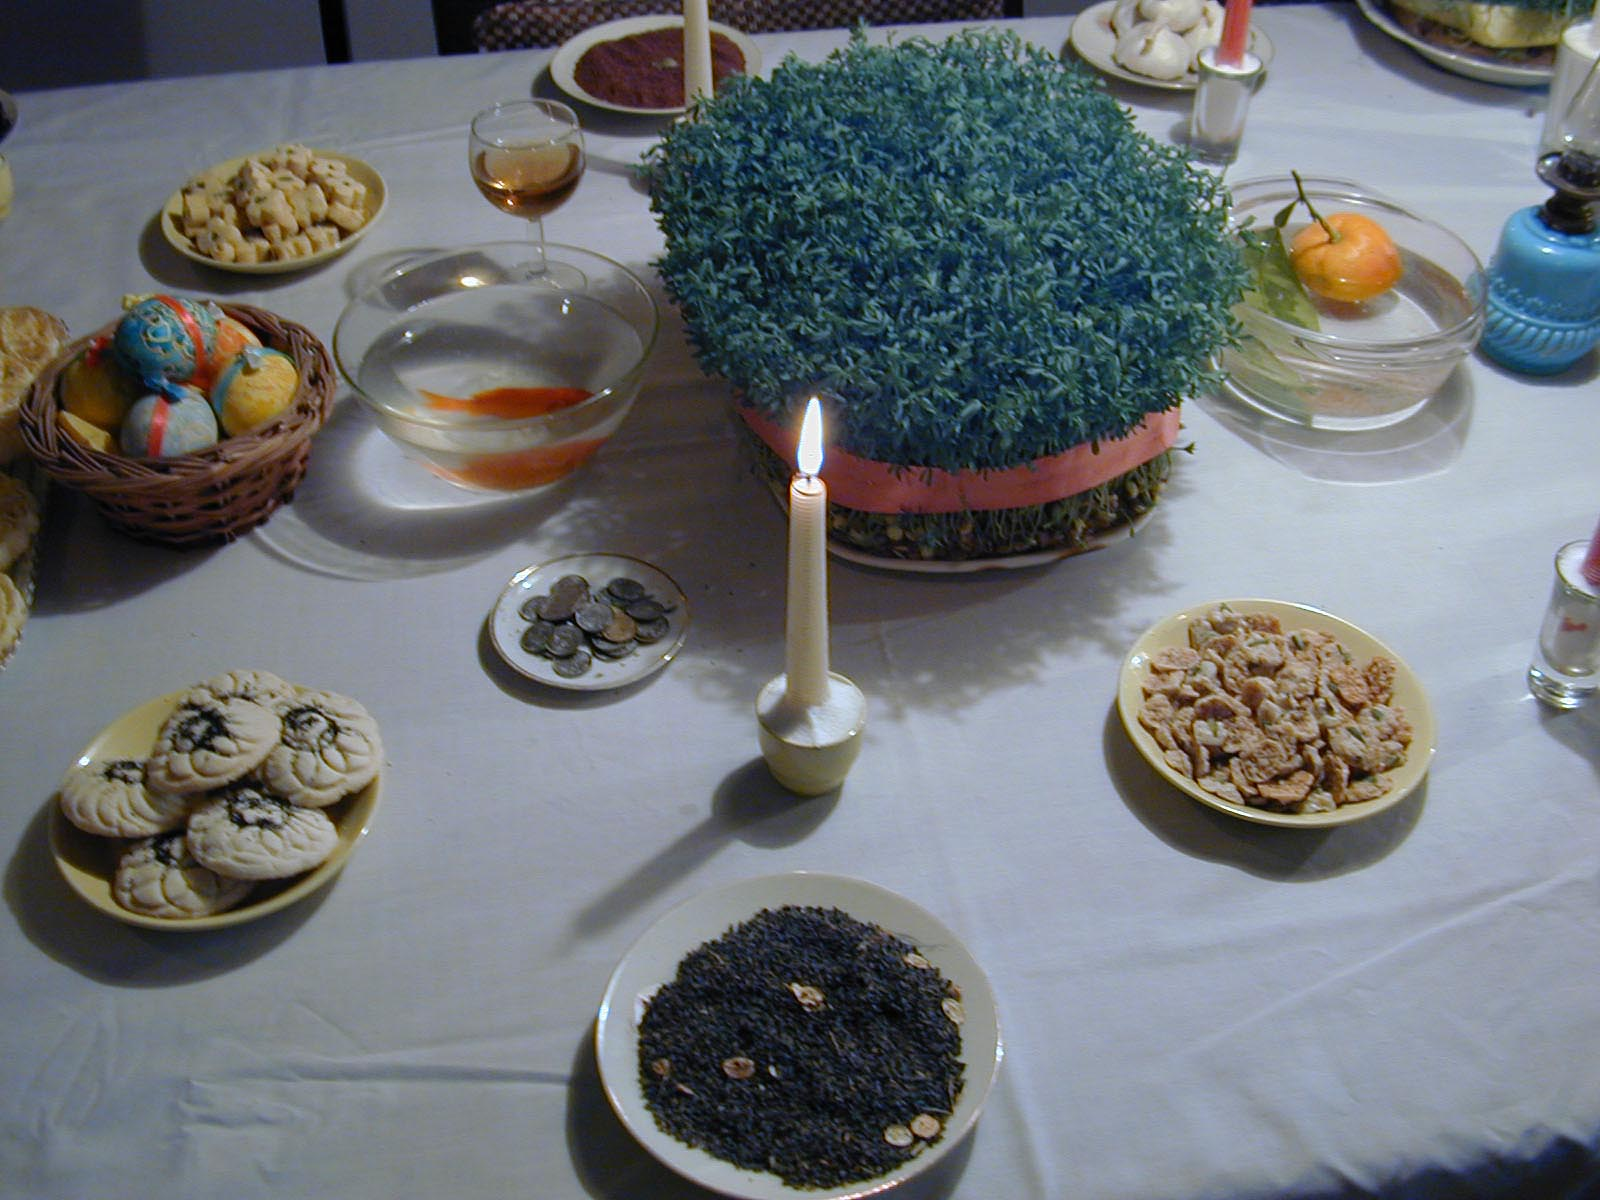 A Haft-Sin table furnished with the traditional seven symbolic items, each beginning with the Persian letter S (Sin), Tehran, Iran, 21st March 2002. Haft-Sin is a tradition associated with Iranian new year (Nowruz) celebrations. (Photo by Kaveh Kazemi/Getty Images)